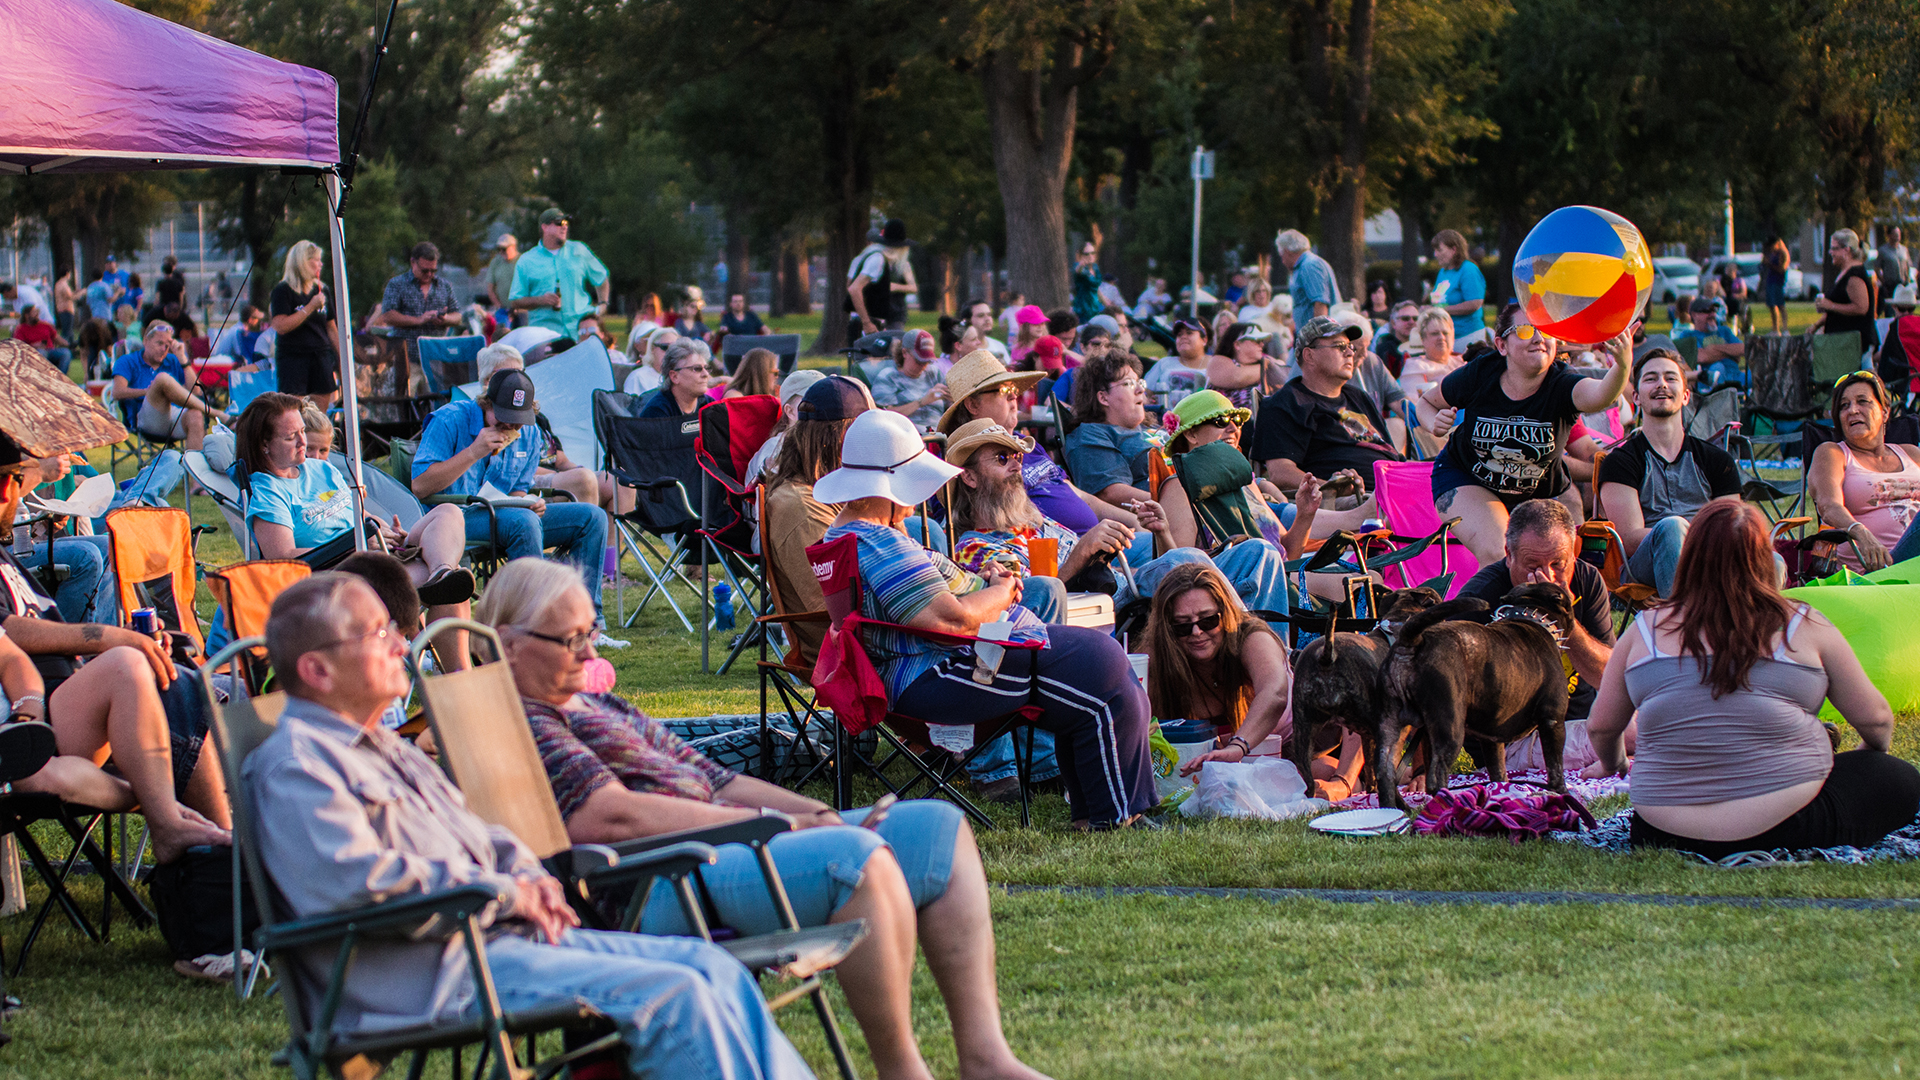 Weekend Planner: Your guide to Amarillo-area fun for Aug. 30 to Sept 6, with Yellow City Sounds Music Festival, Labor Day fun, more